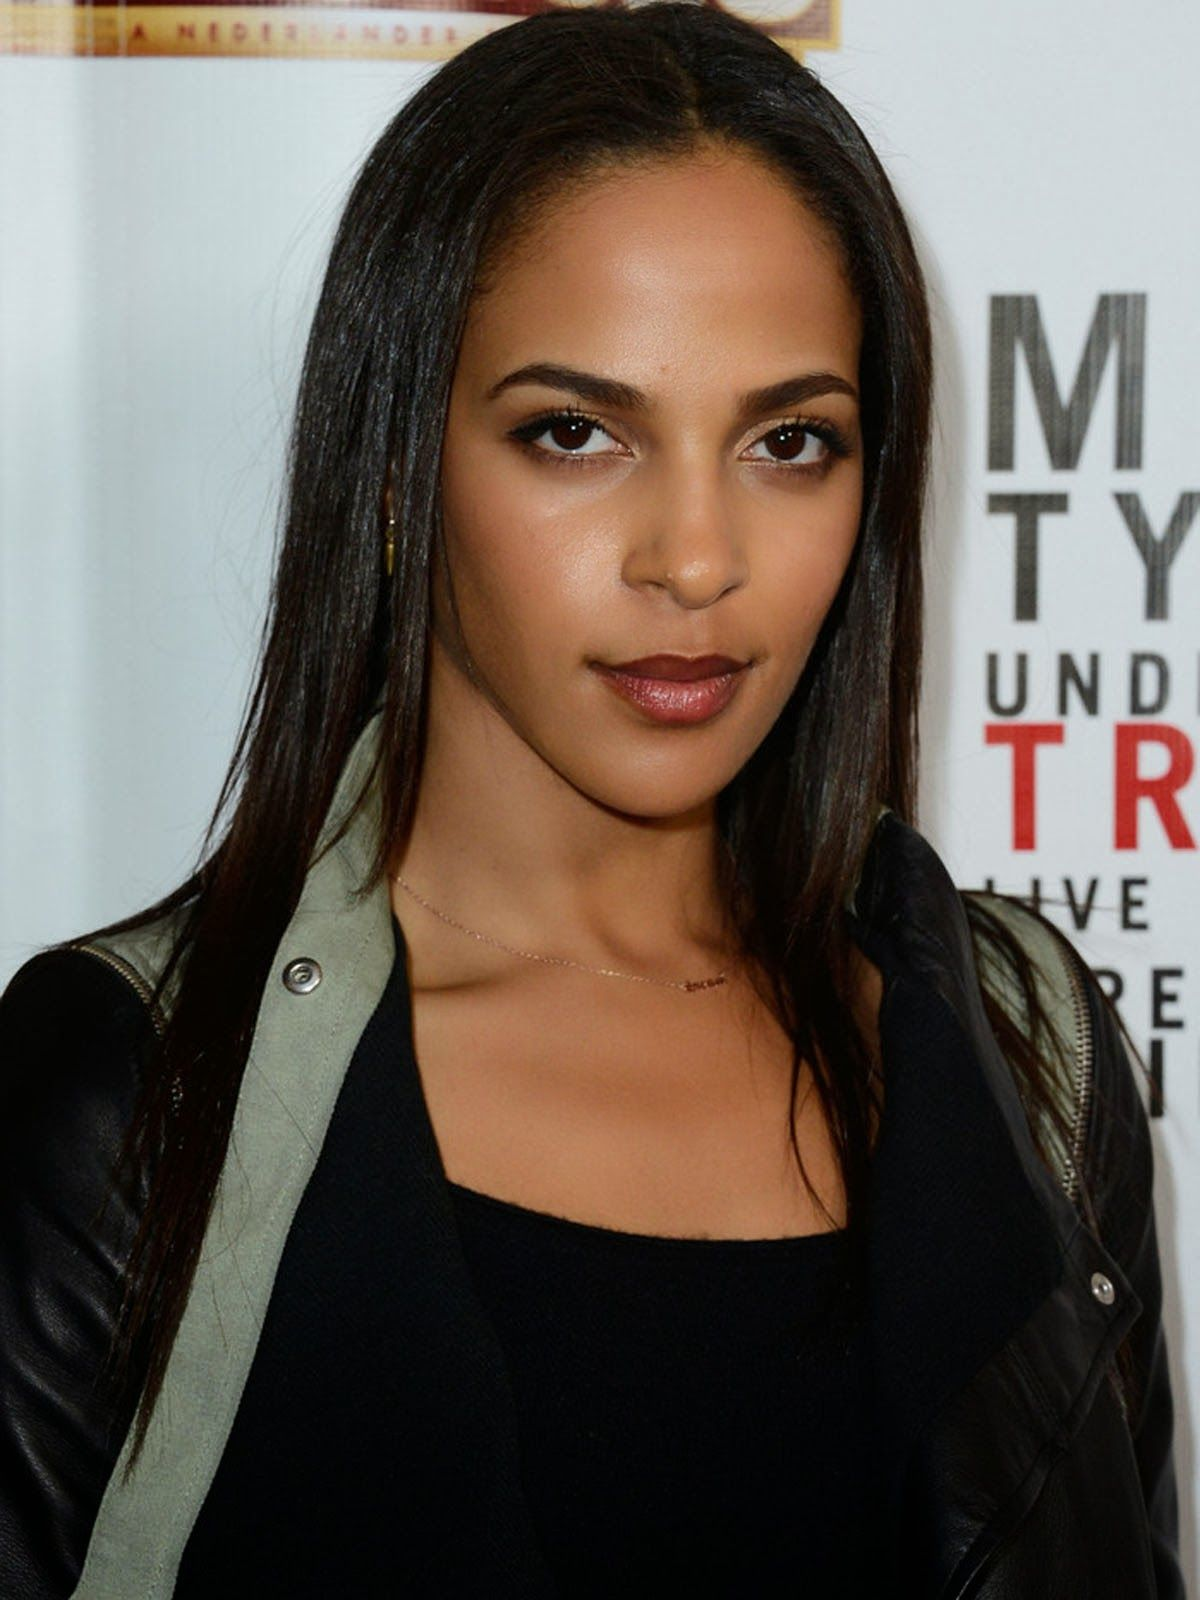 How tall is Megalyn Echikunwoke?